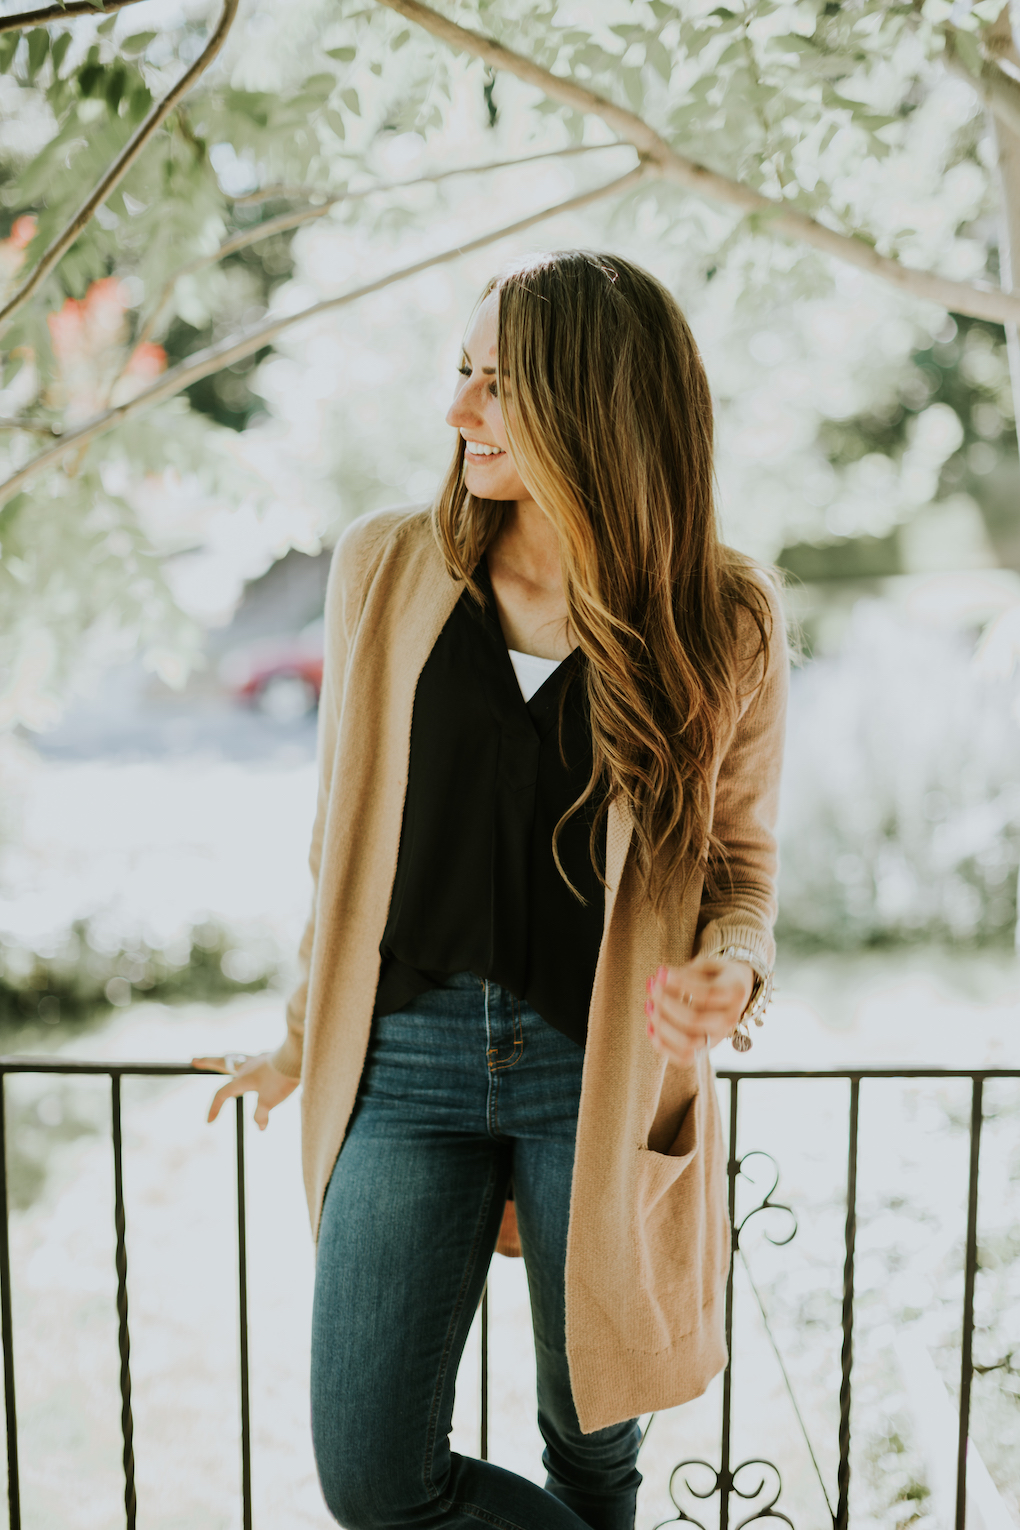 long loose curled brown hair with girl wearing long oversized tan cardigan and black sheer top